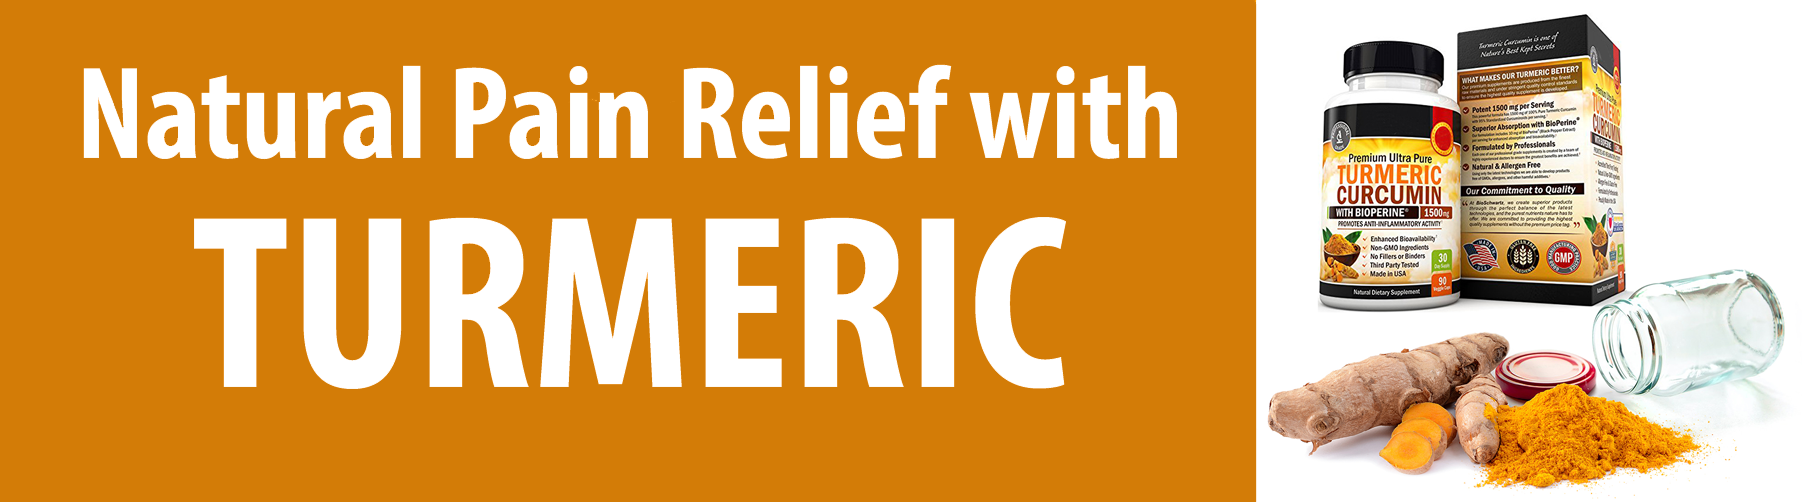 Natural Anti-Inflammatory Pain Relief with Turmeric